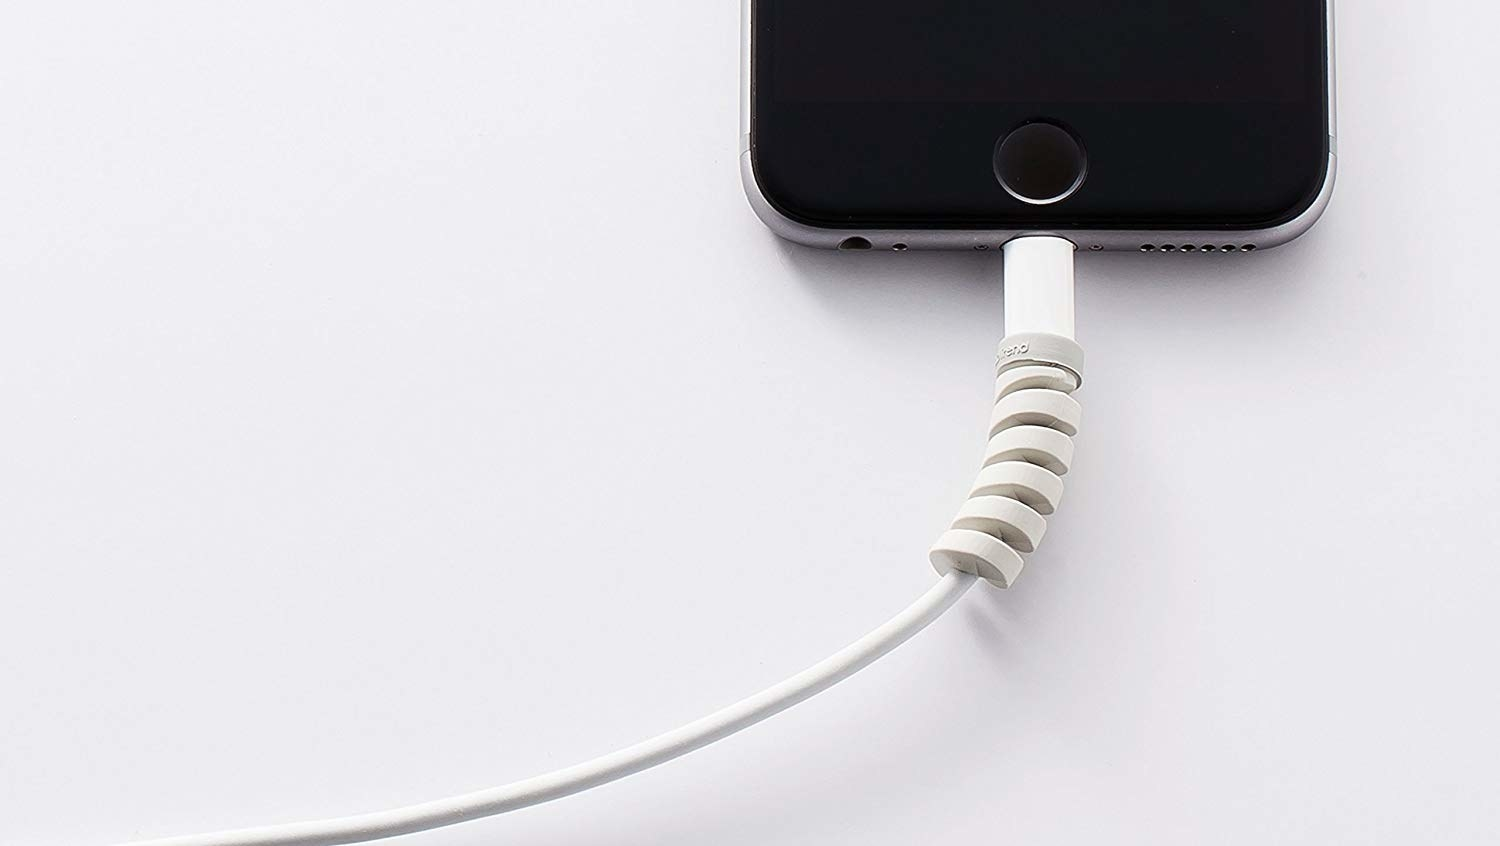 phone cable with spiraled protector on the end